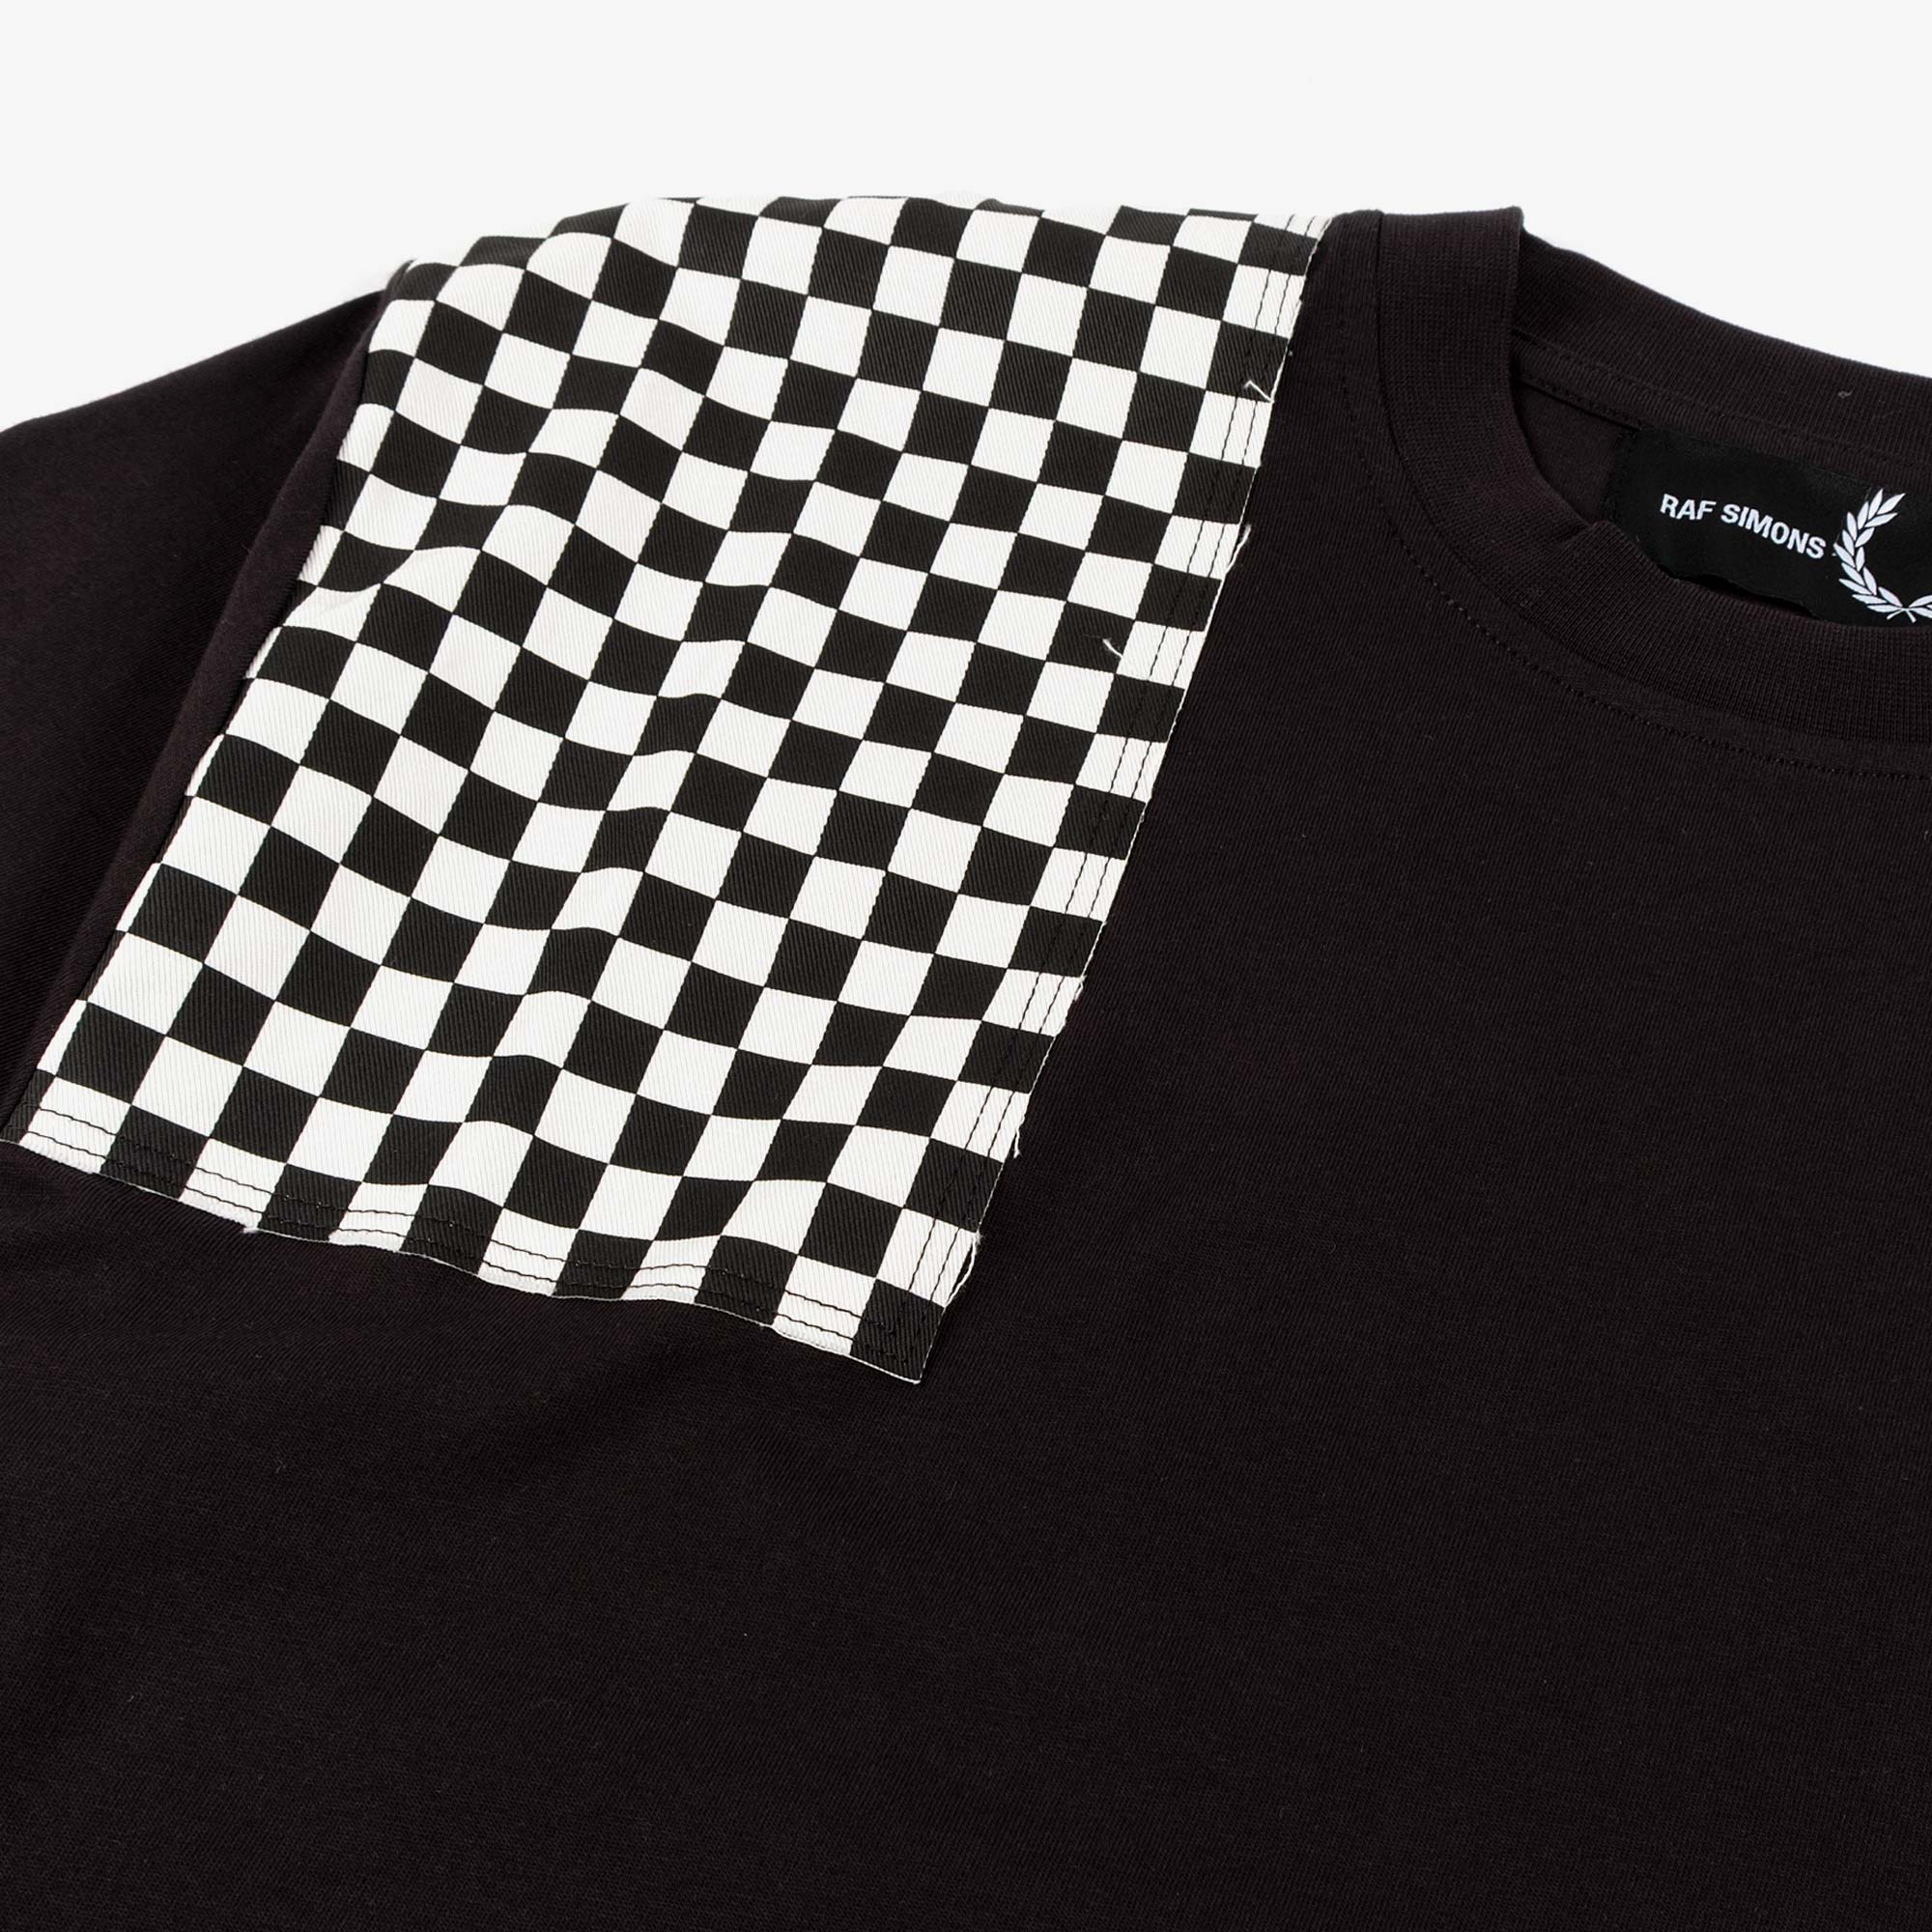 Fred Perry X Raf Simons Oversized Printed Patch Tee - Black 3